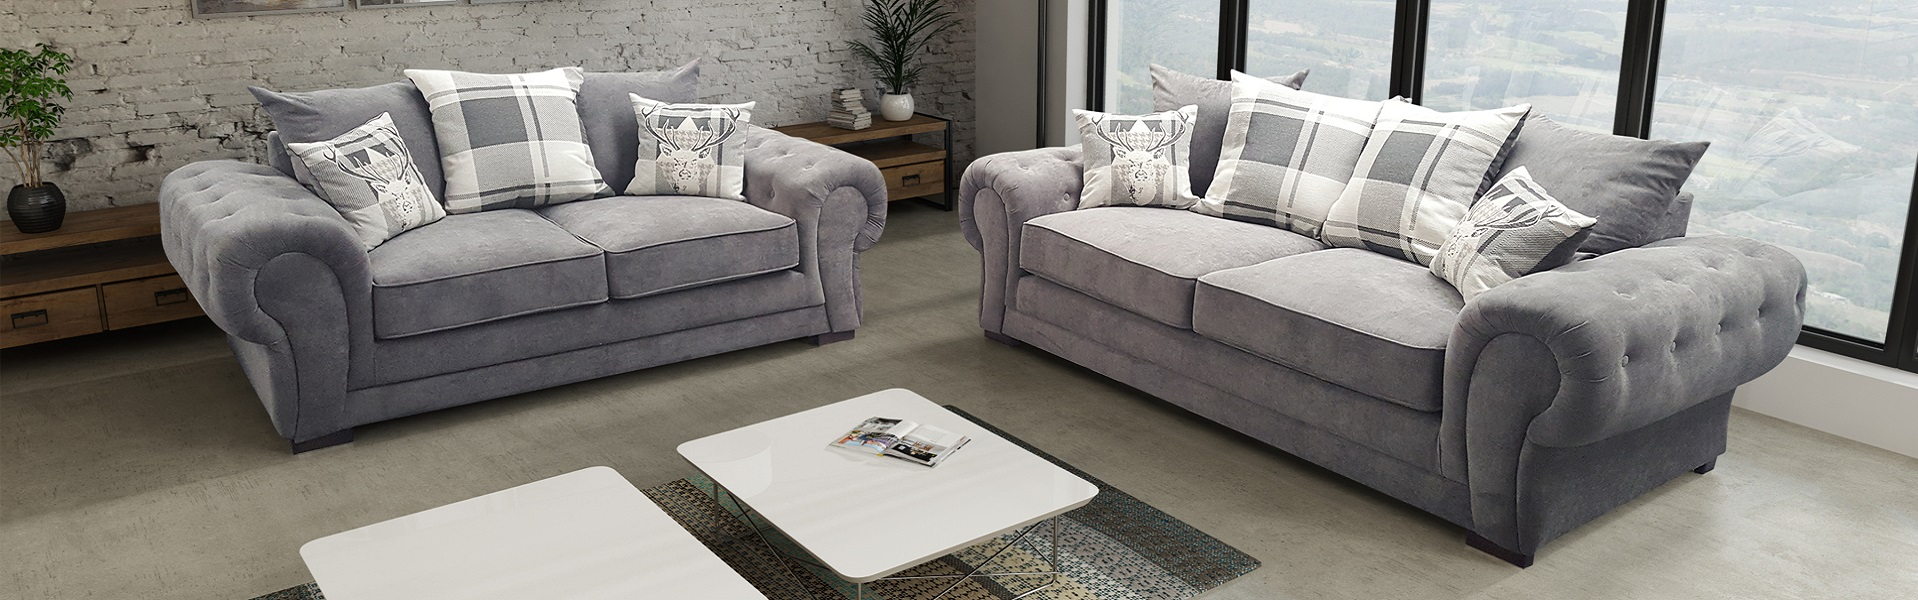 Pf Furniture Leading Supplier Of Living Room And Bedroom